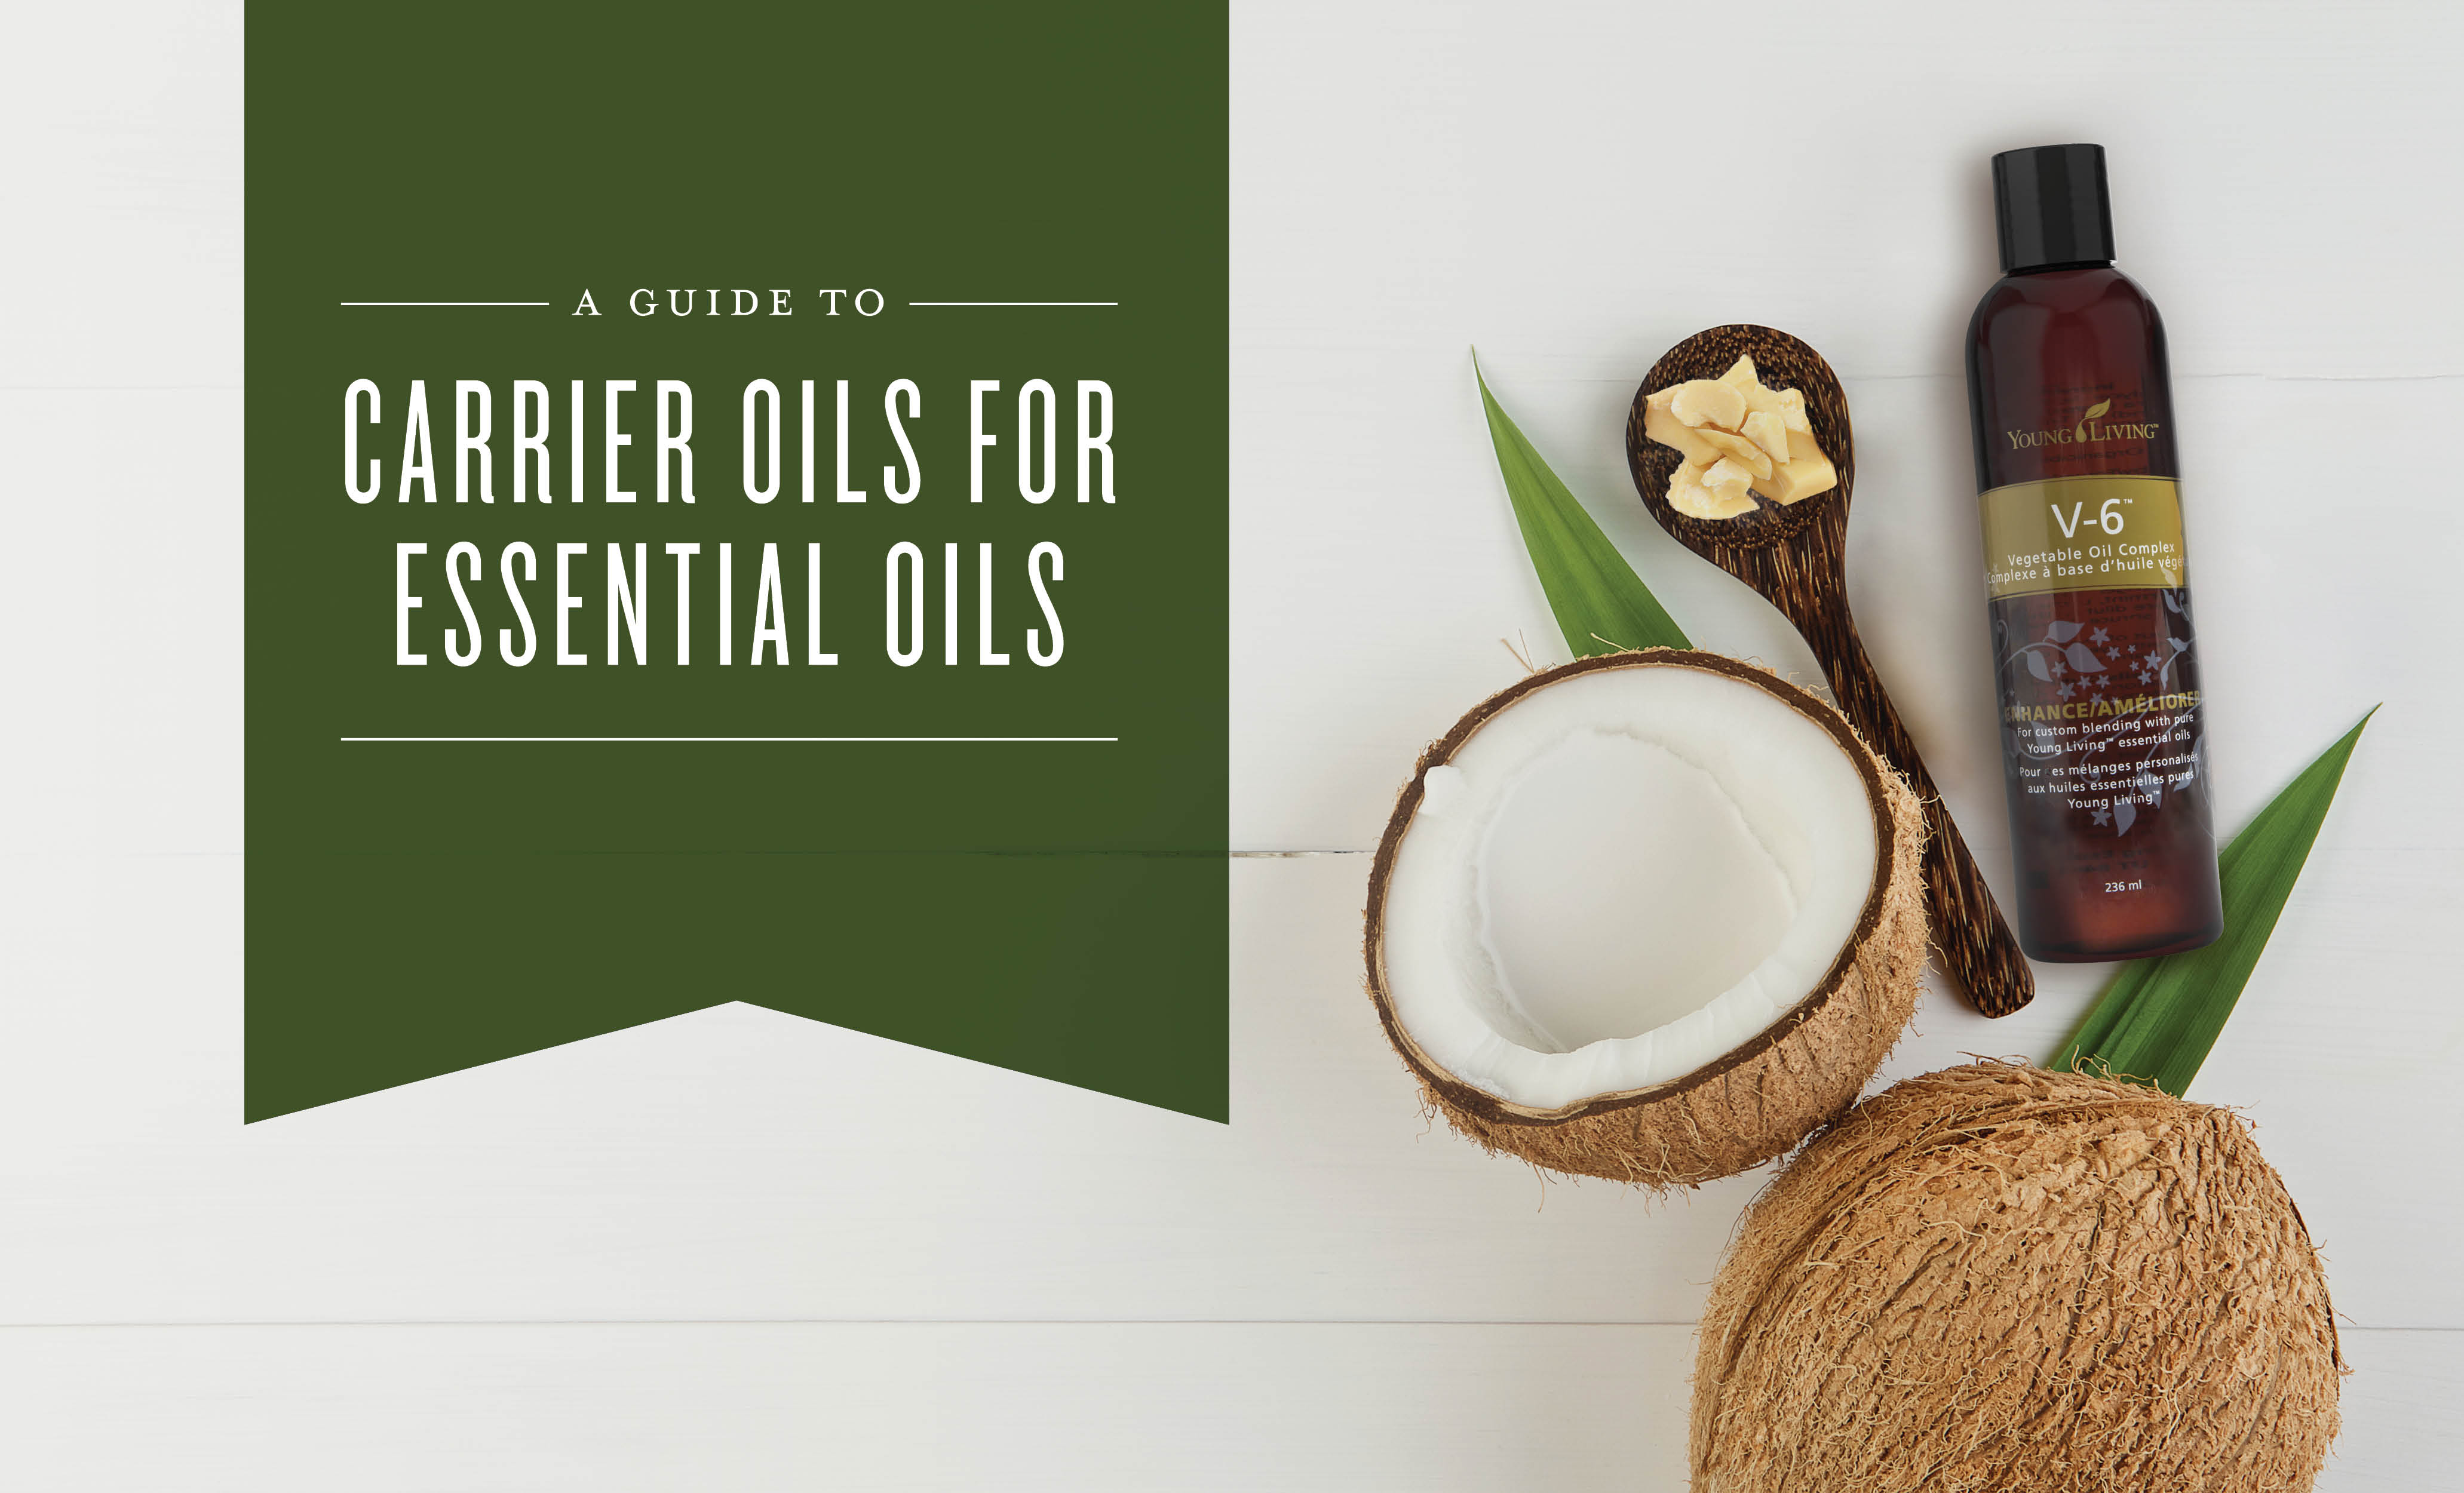 carrier oils for essential oils featured image